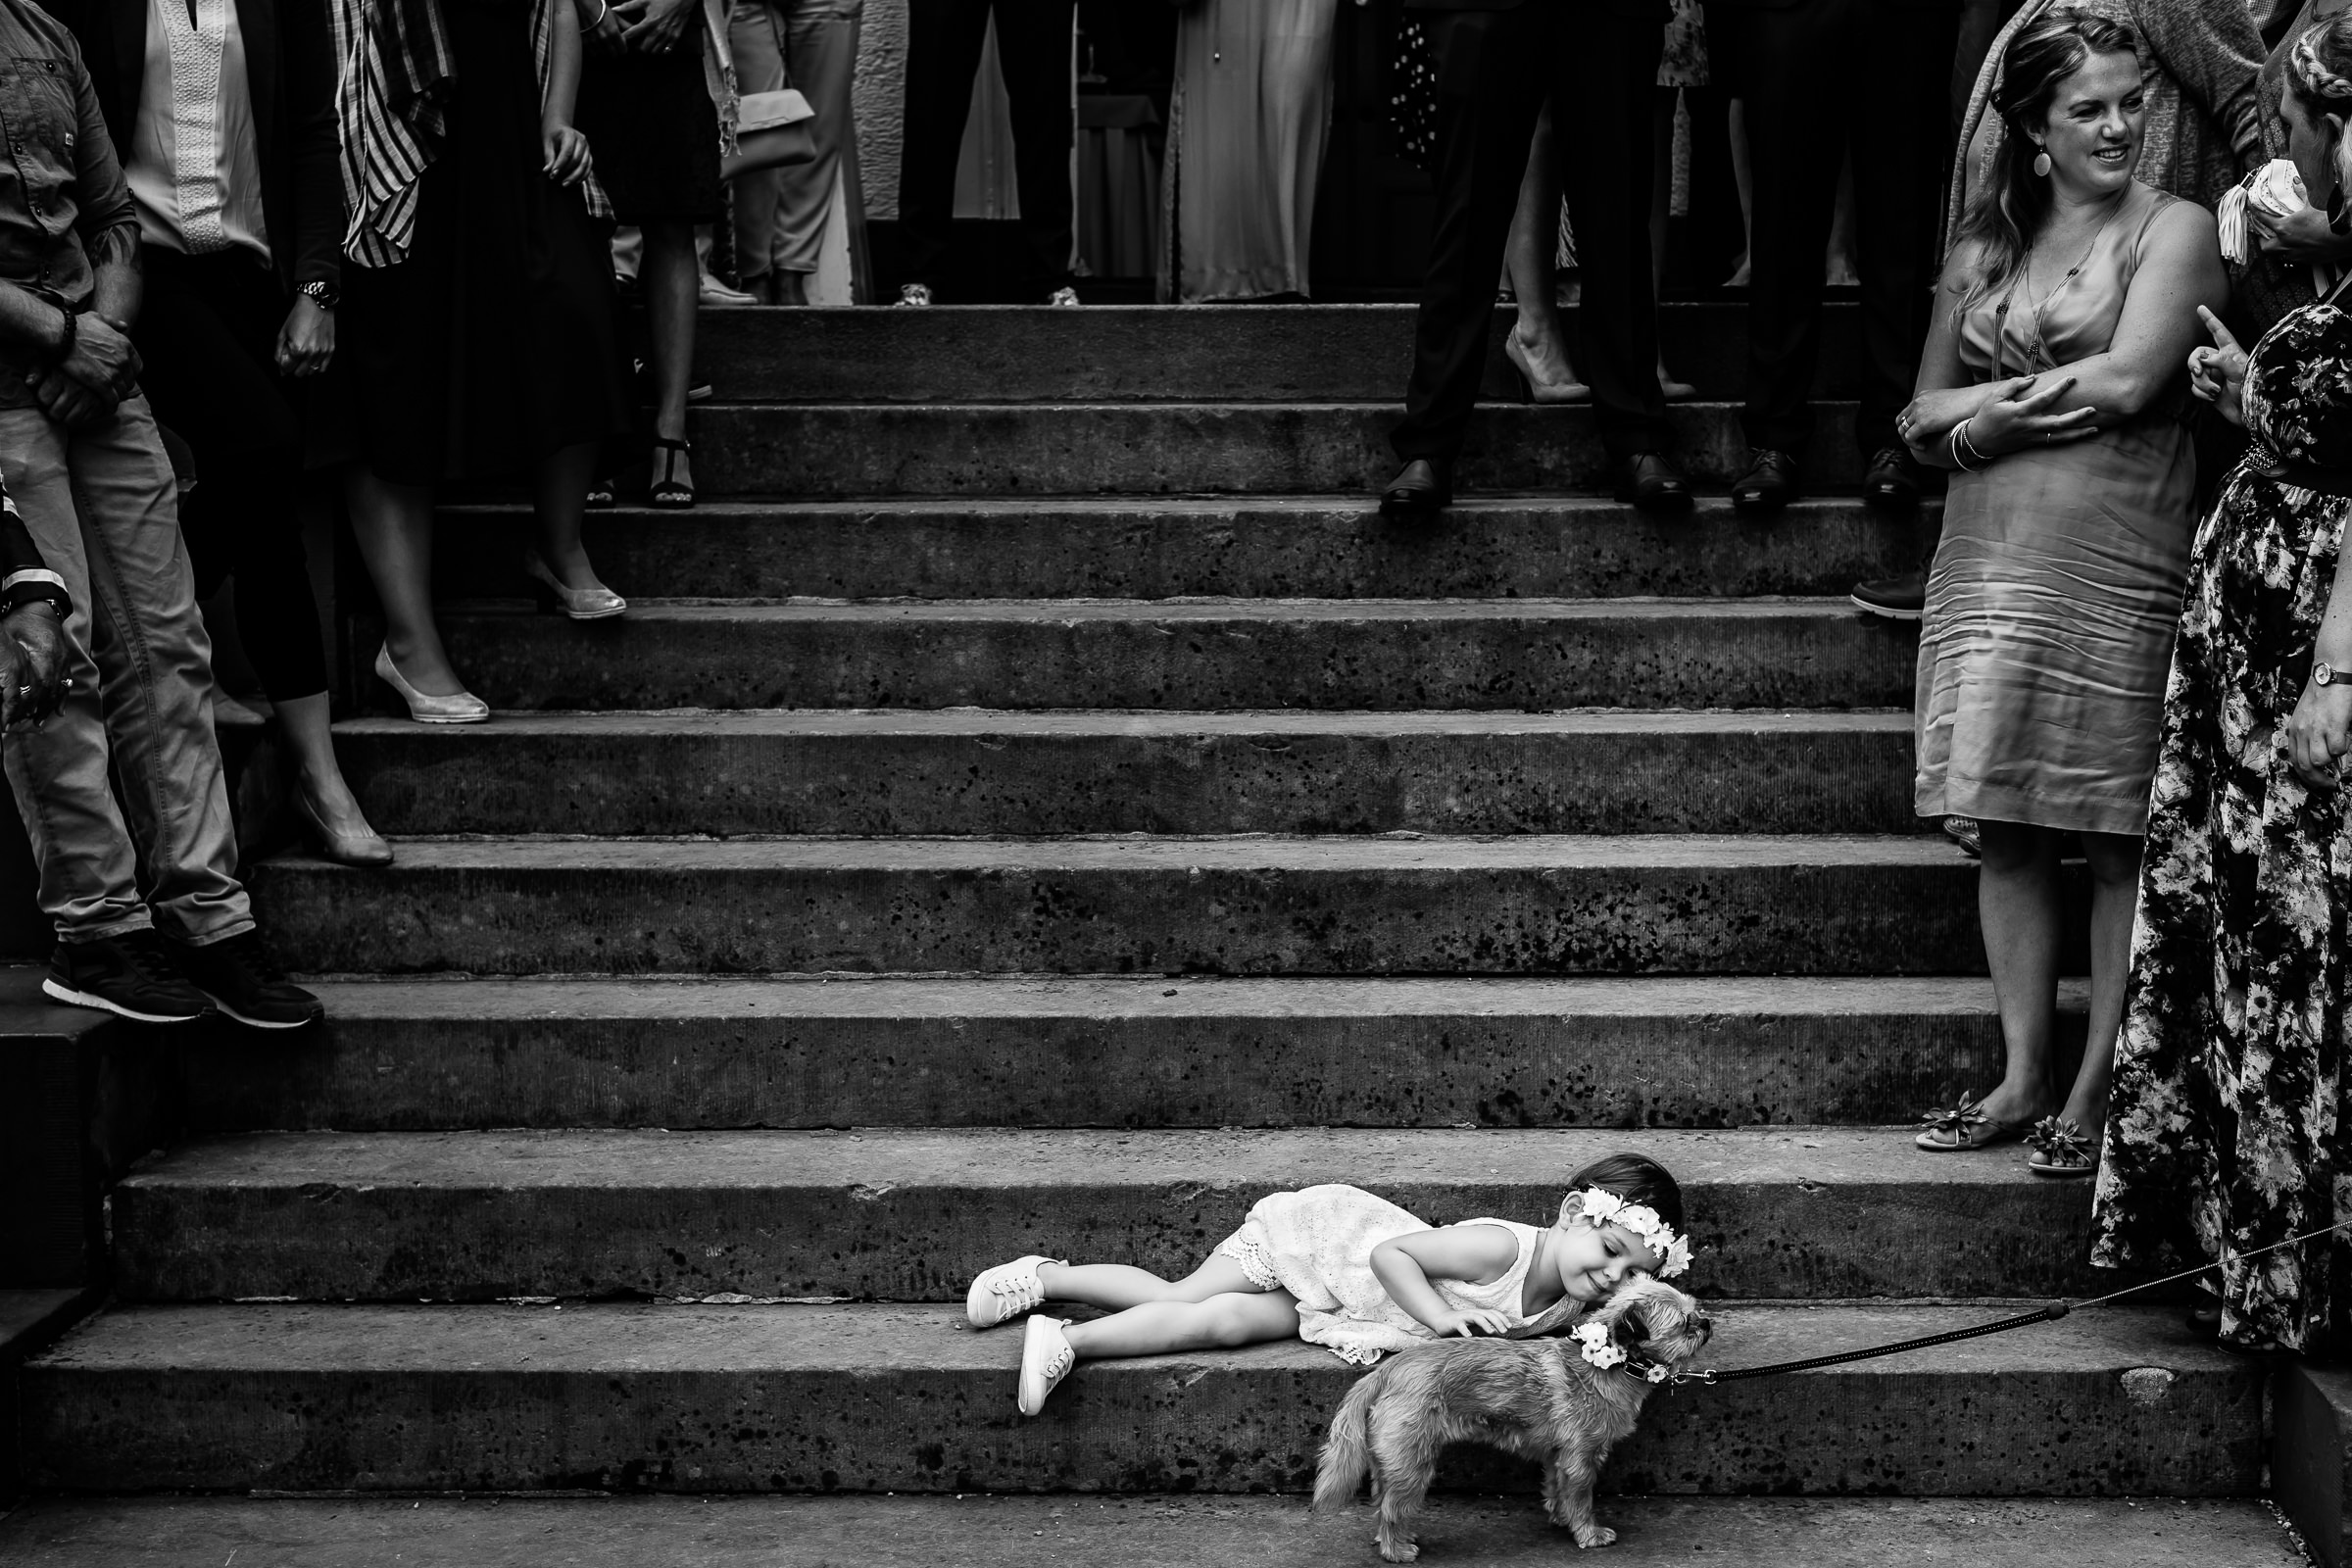 50 best documentary wedding photos of the decade - photo by Peter van der Lingen